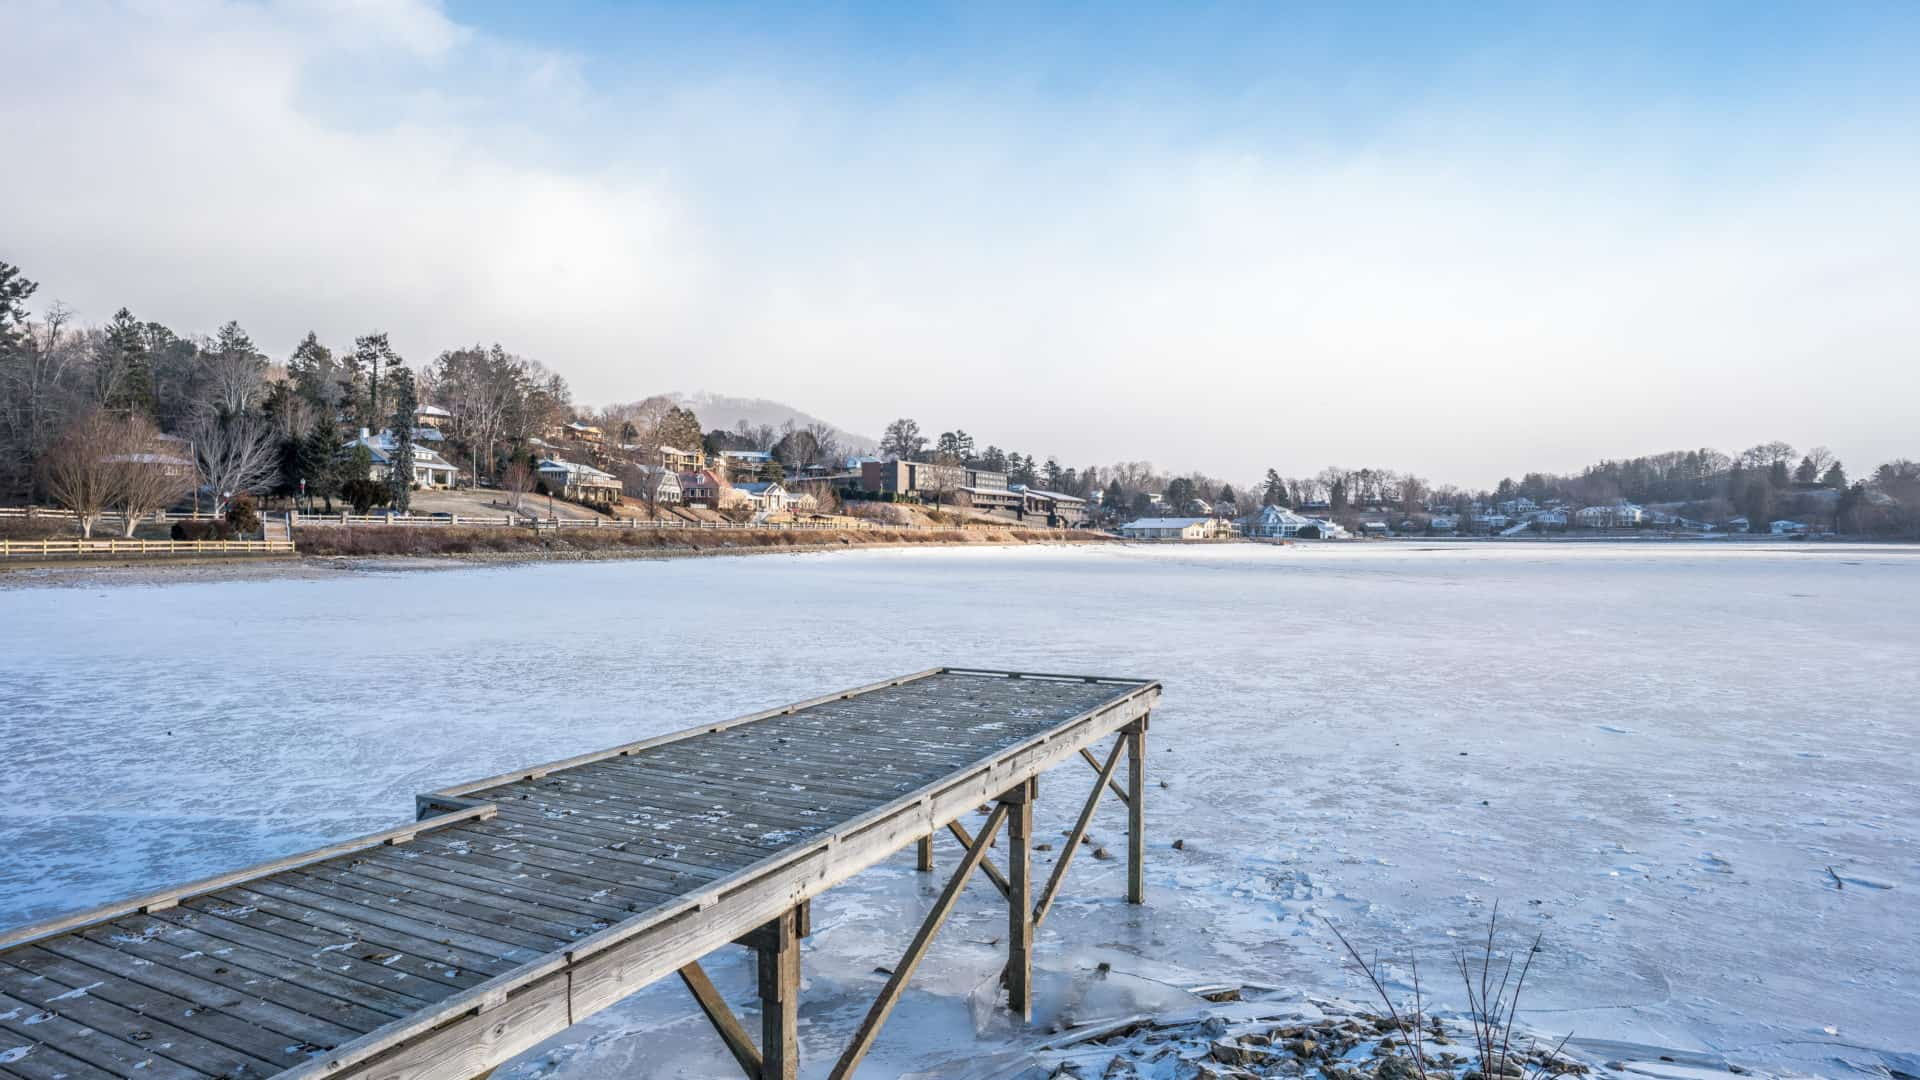 View of frozen Lake Junaluska from pier